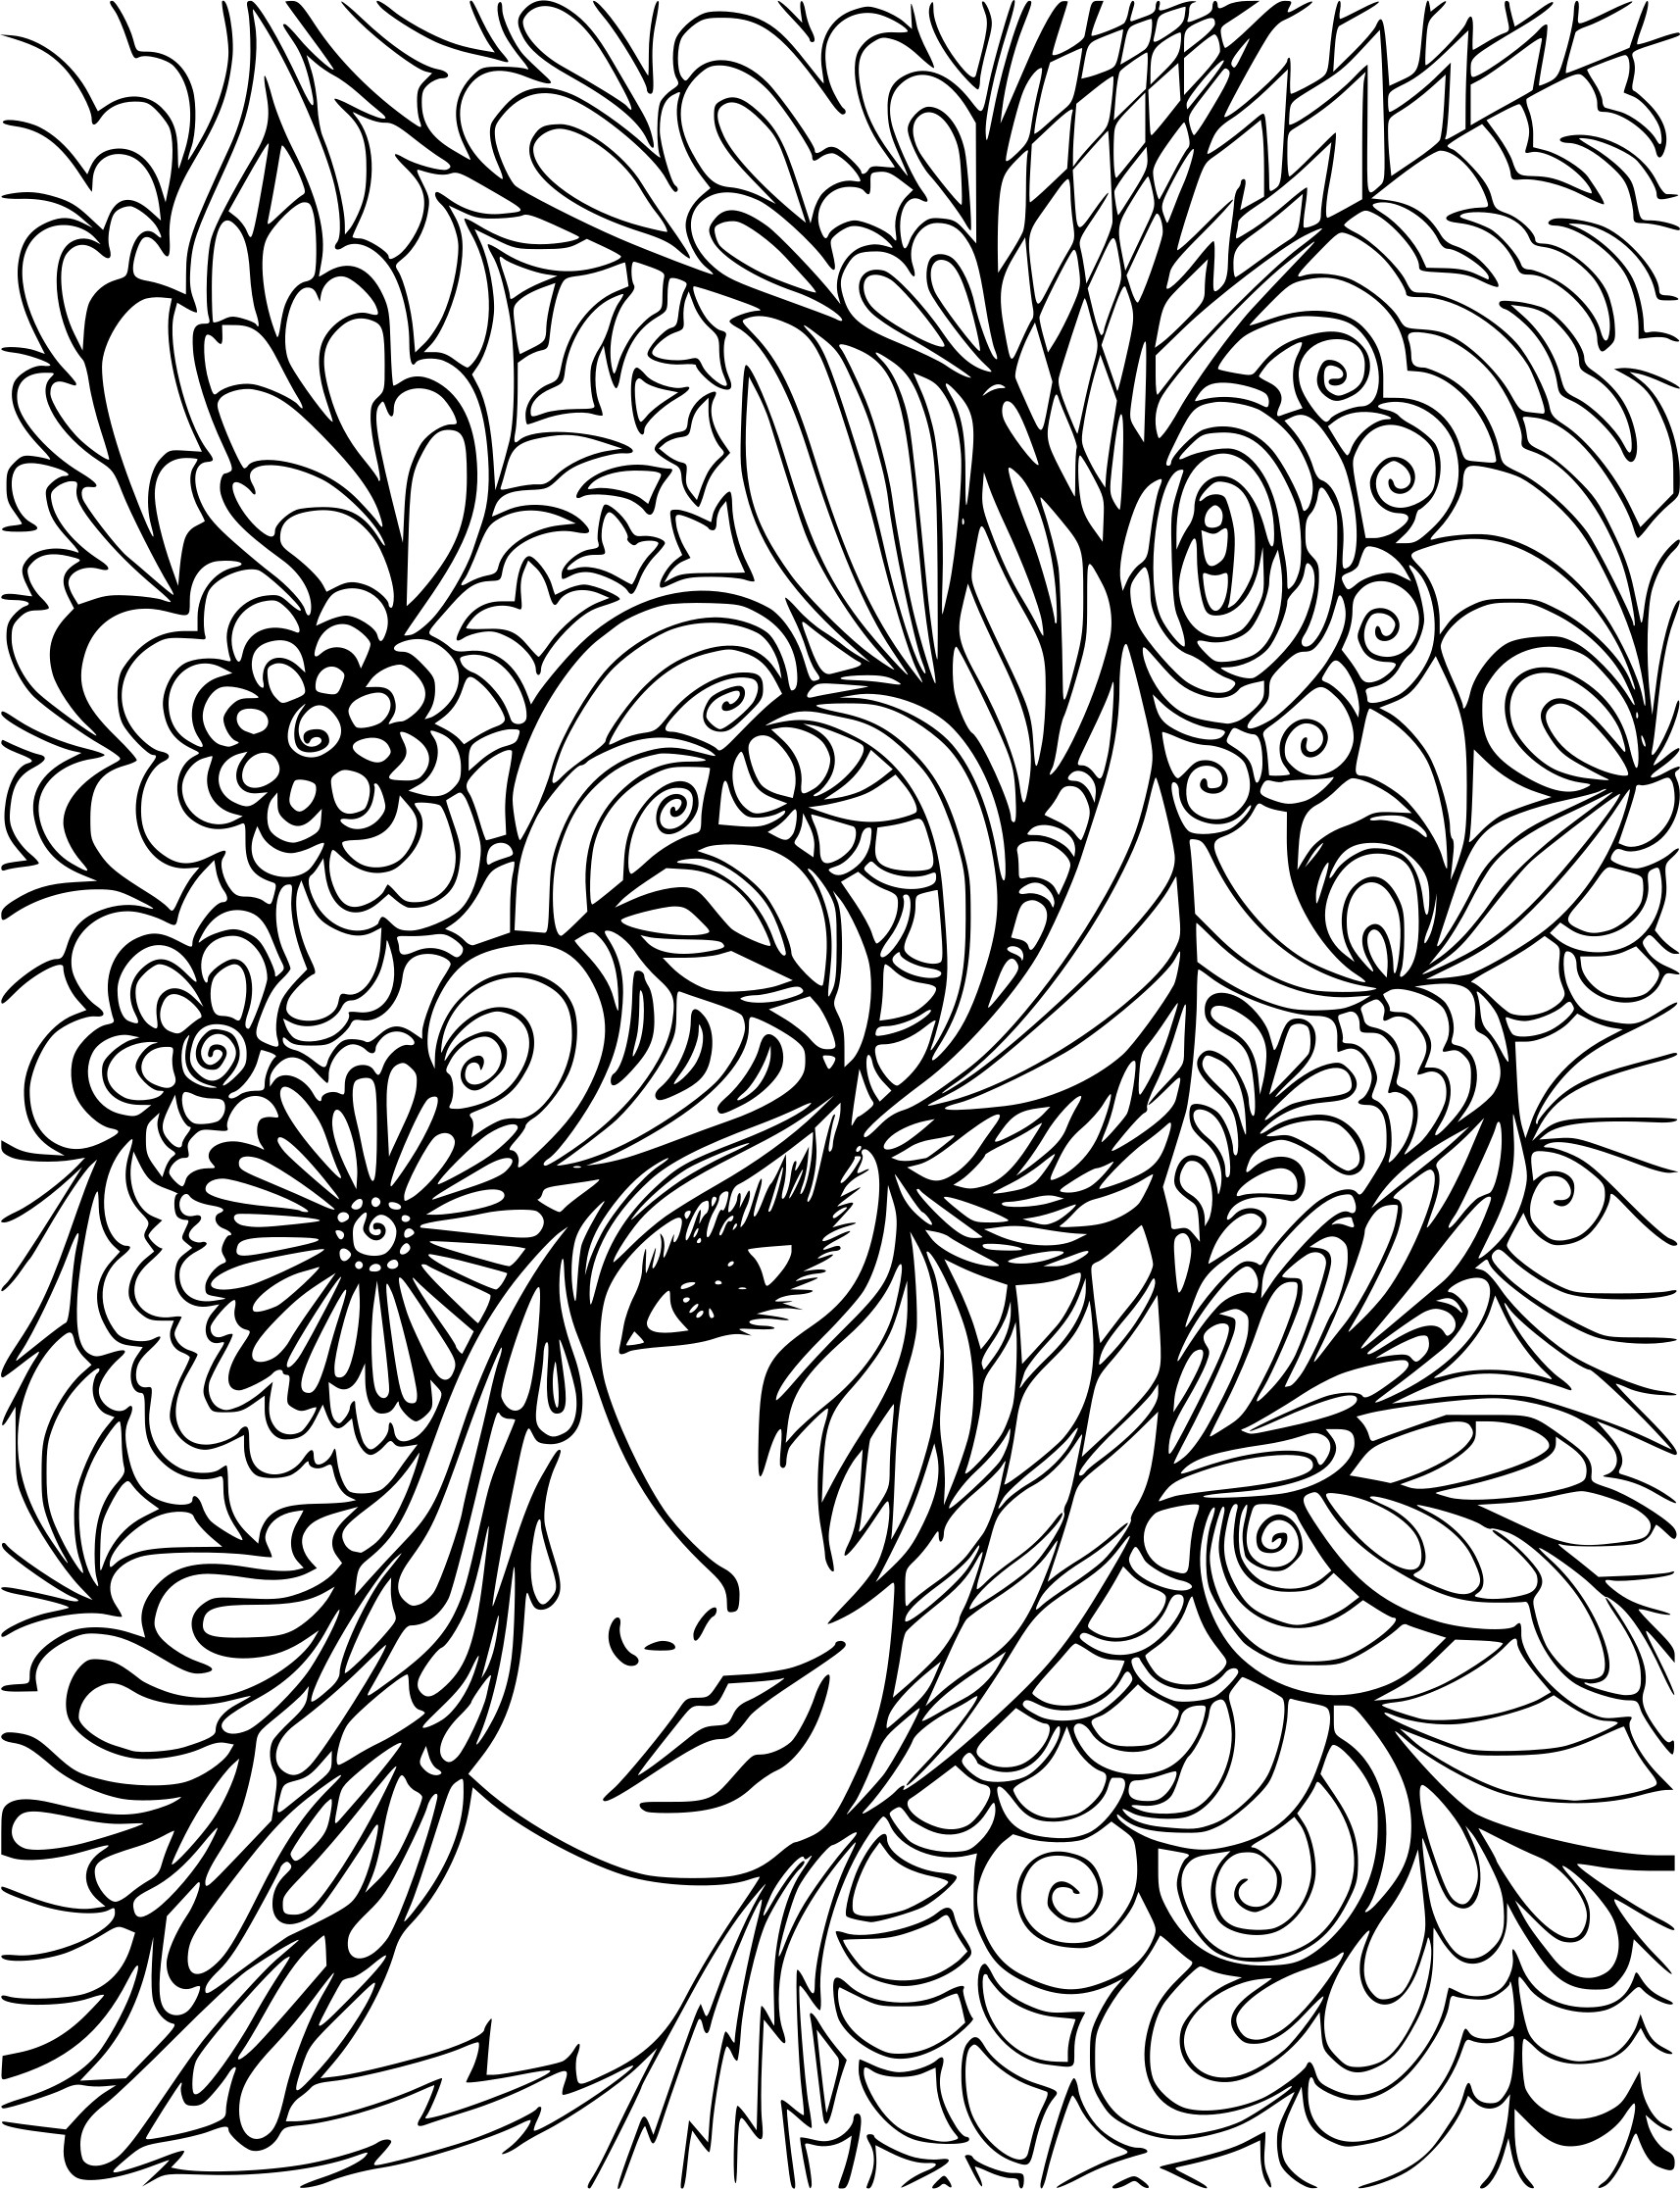 Coloriage anti stress cameleon - Anti coloriage ...